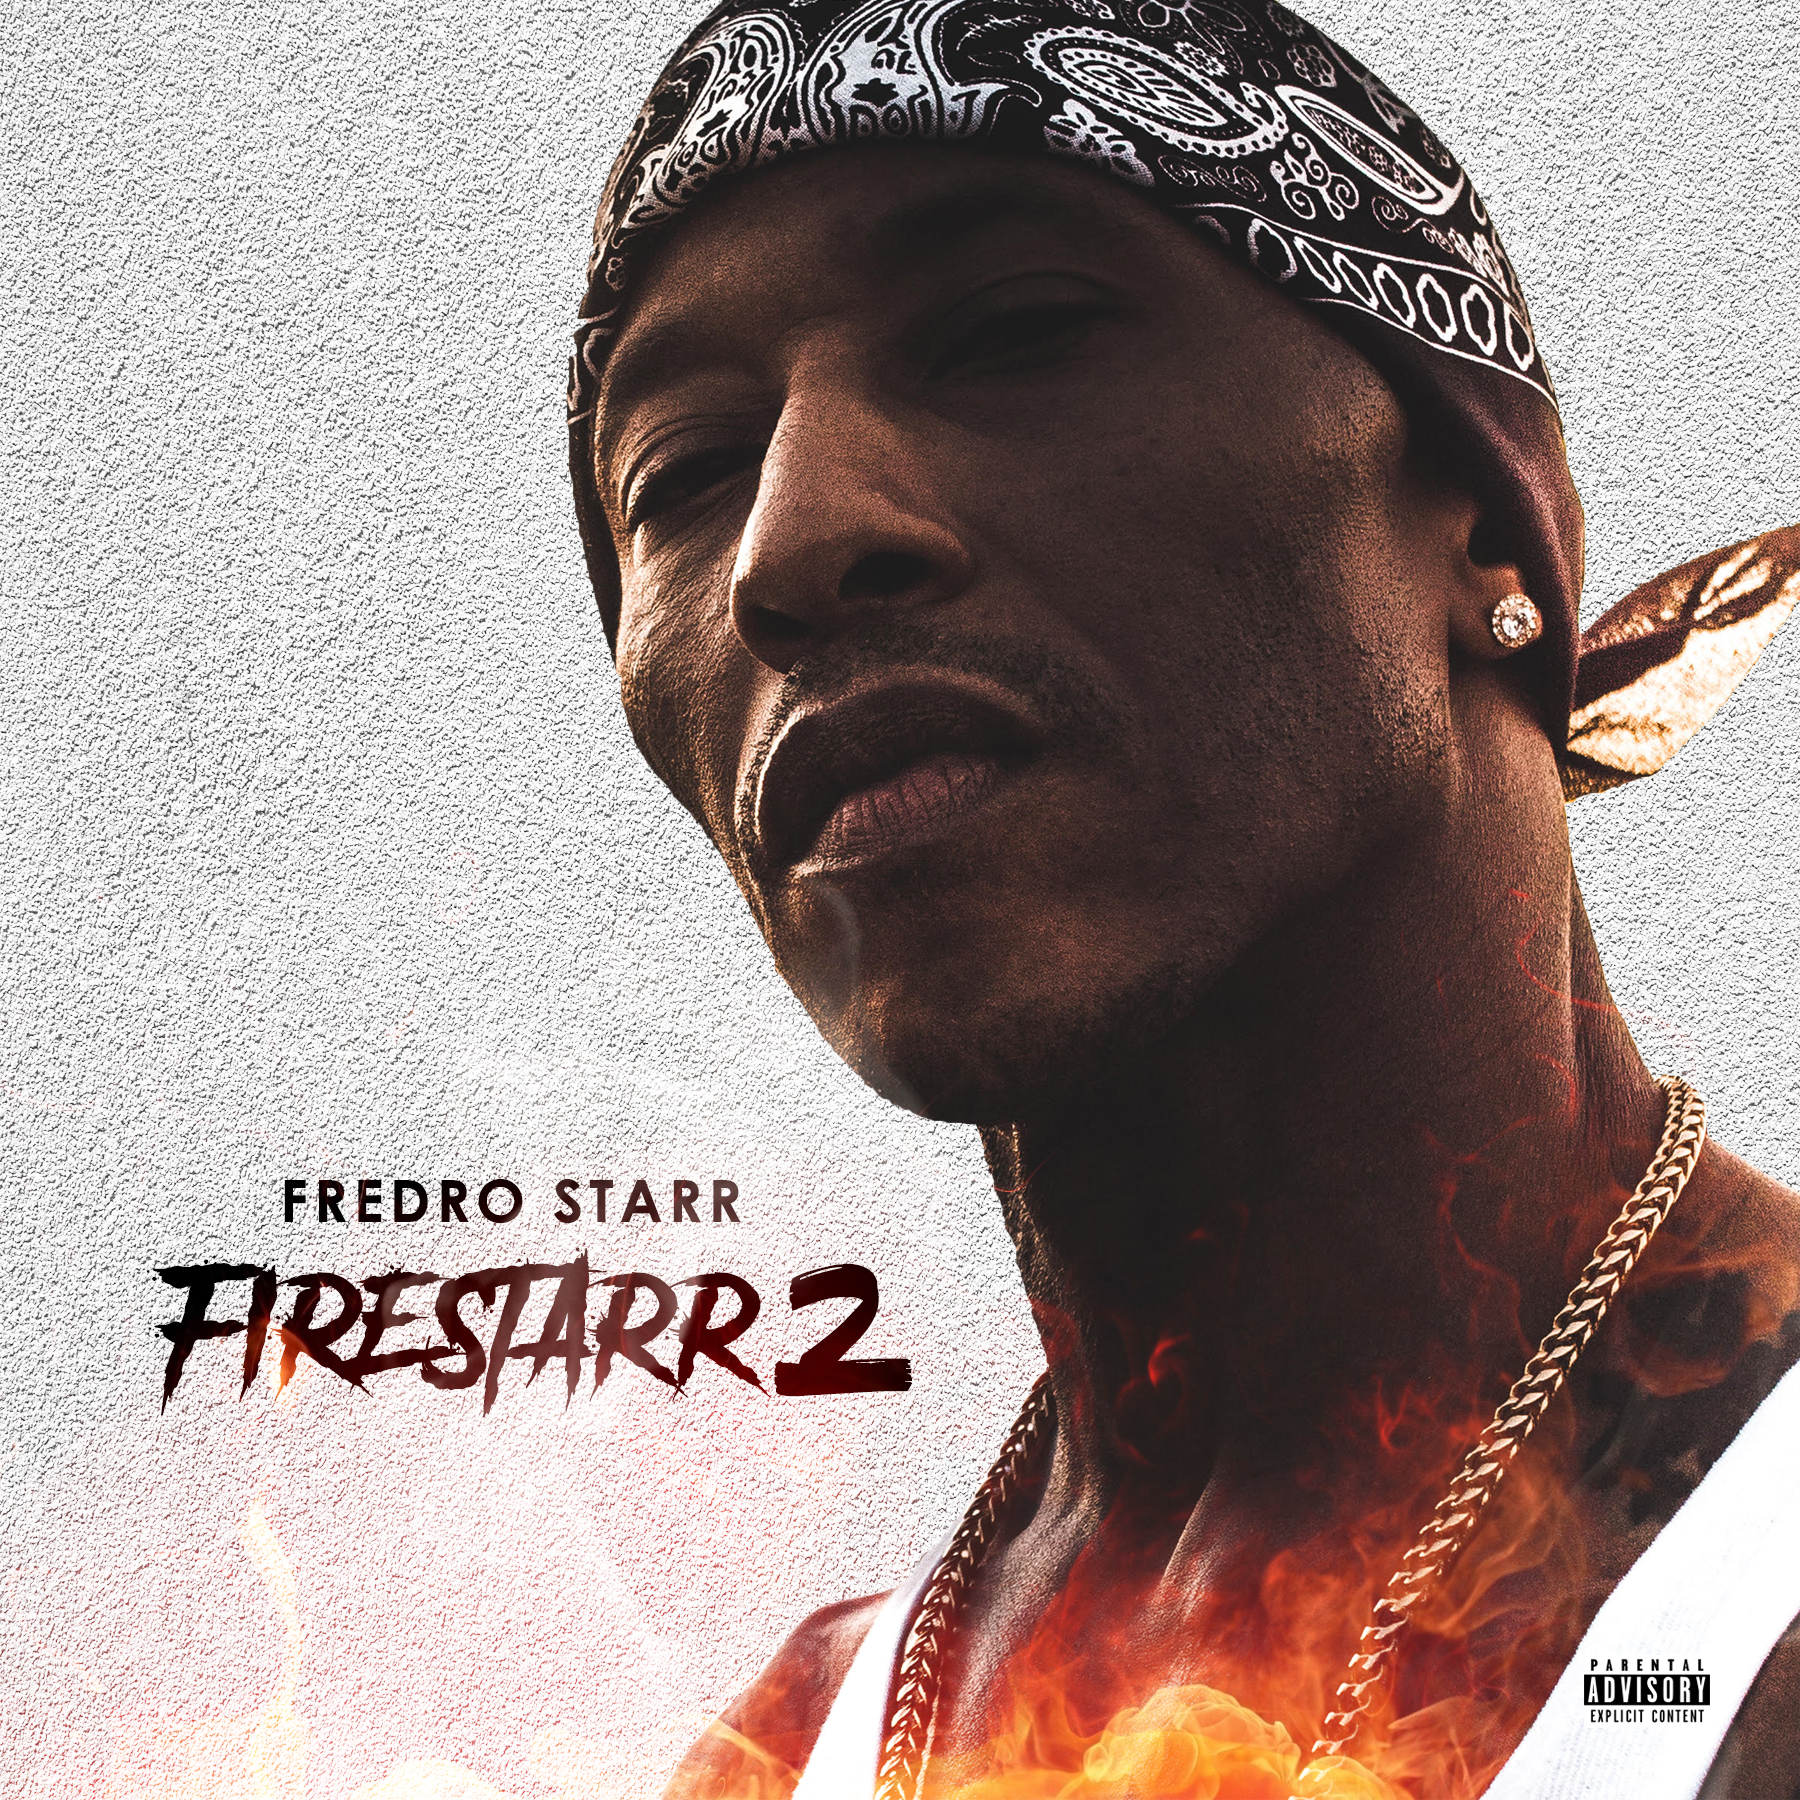 Fredro Starr - 2 Do U Know Feat. Vado & The Kid Daytona (Produced by The Korruption) [audio]